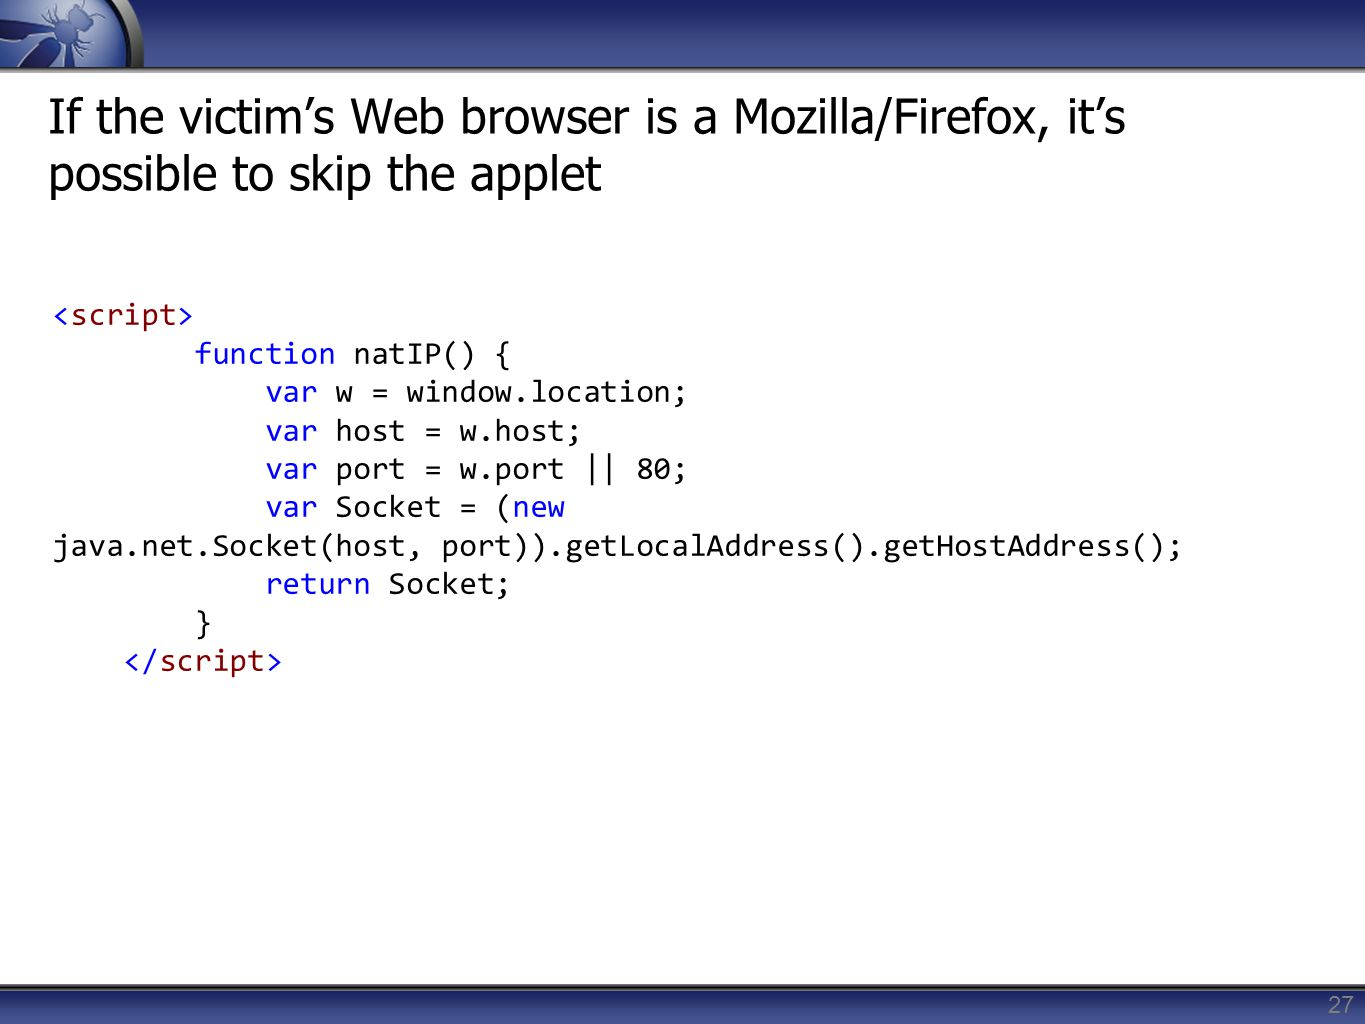 If the victim's Web browser is a Mozilla/Firefox, it's possible to skip the applet